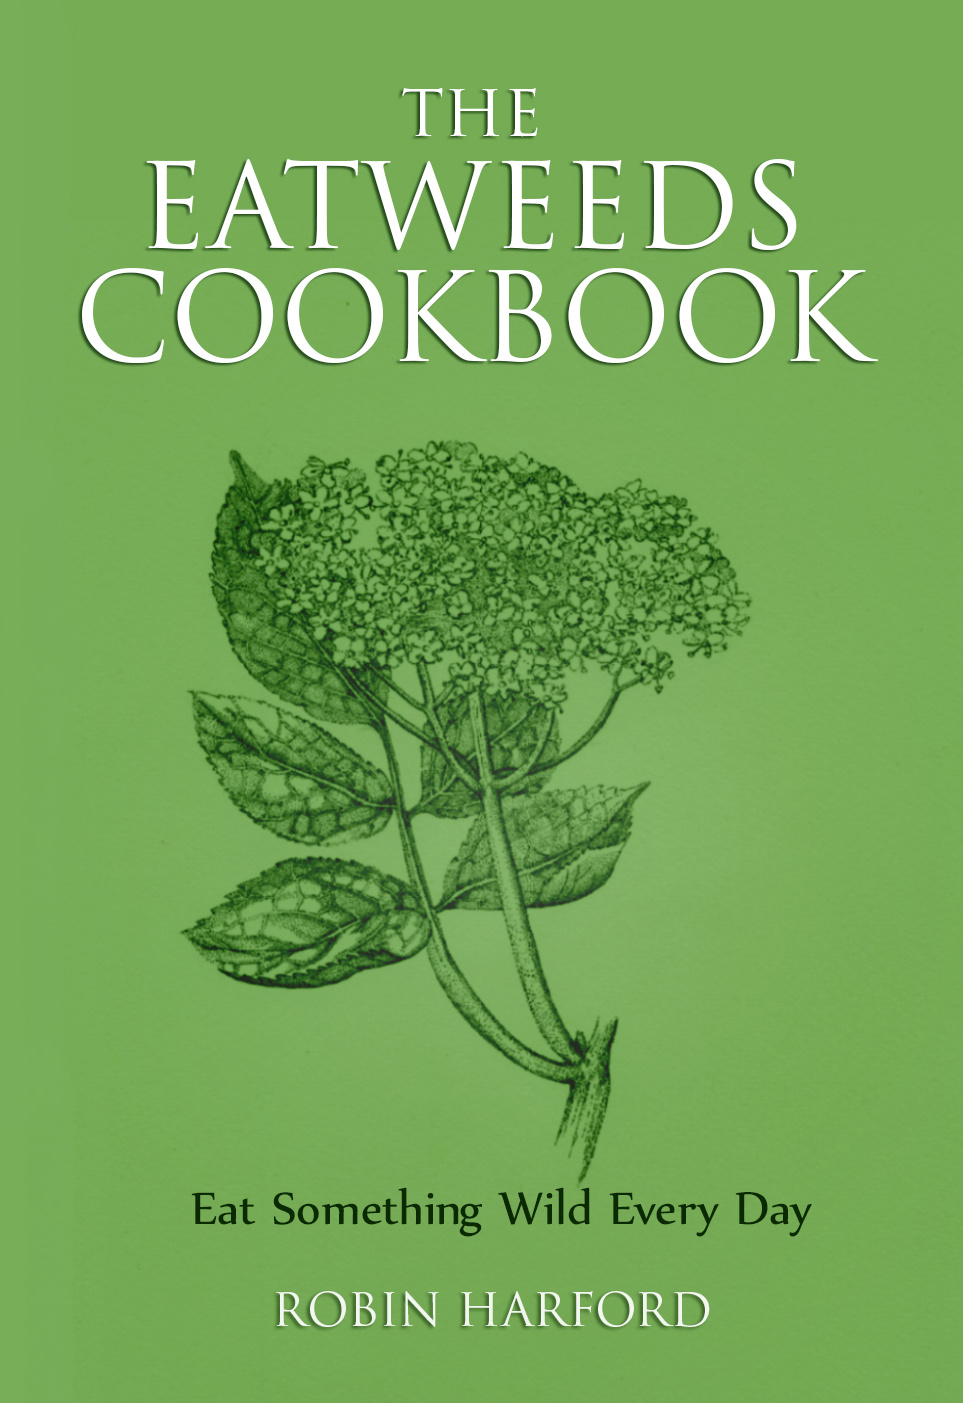 How To Make A Decorative Book Cover ~ Deliciously designed cookbook covers designs